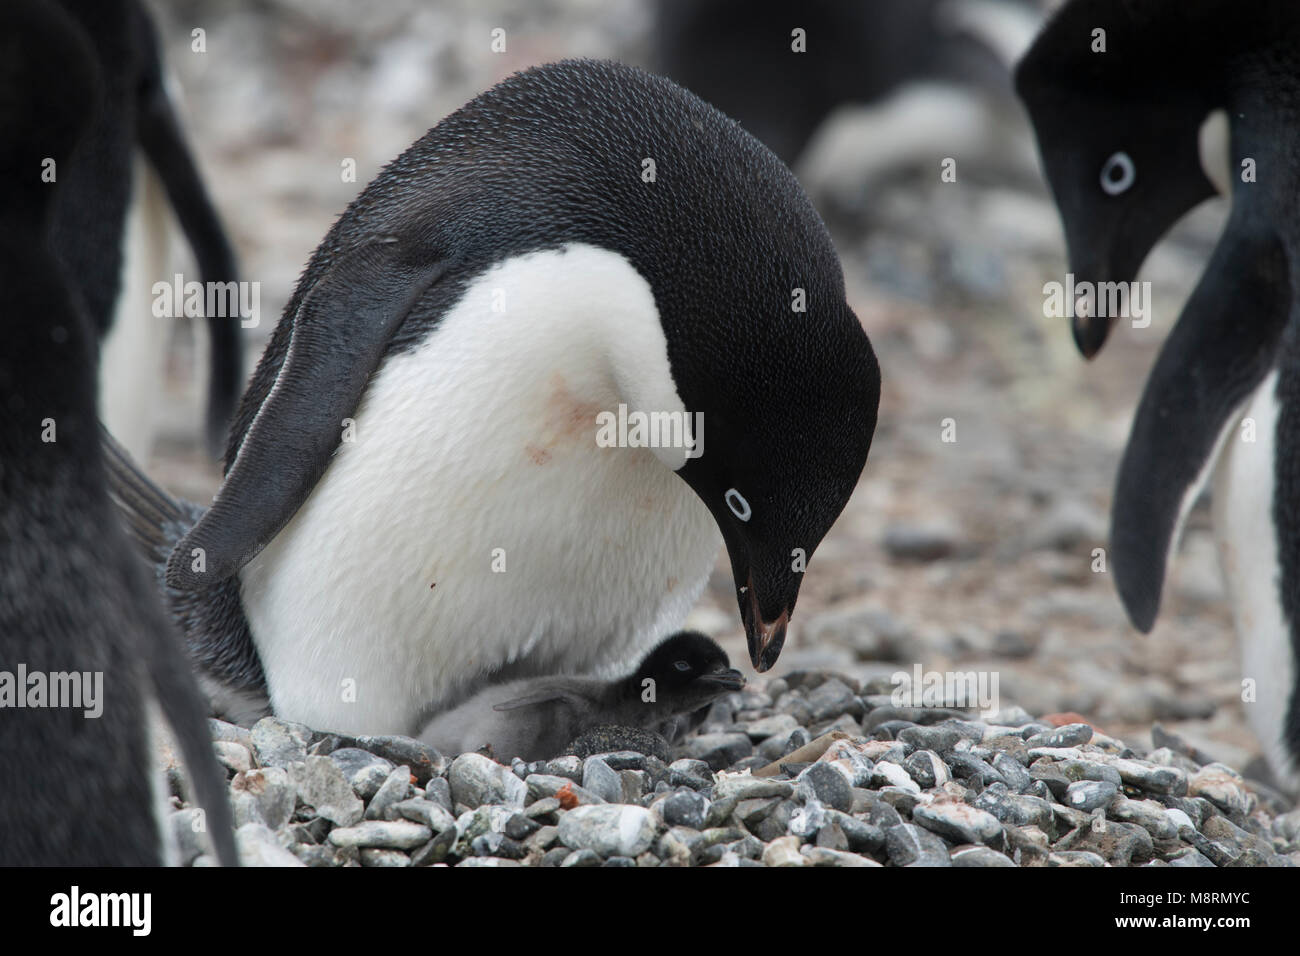 An Adelie penguin feeds its penguin chick at the penguin colony on Brown Bluff, Antarctica. - Stock Image